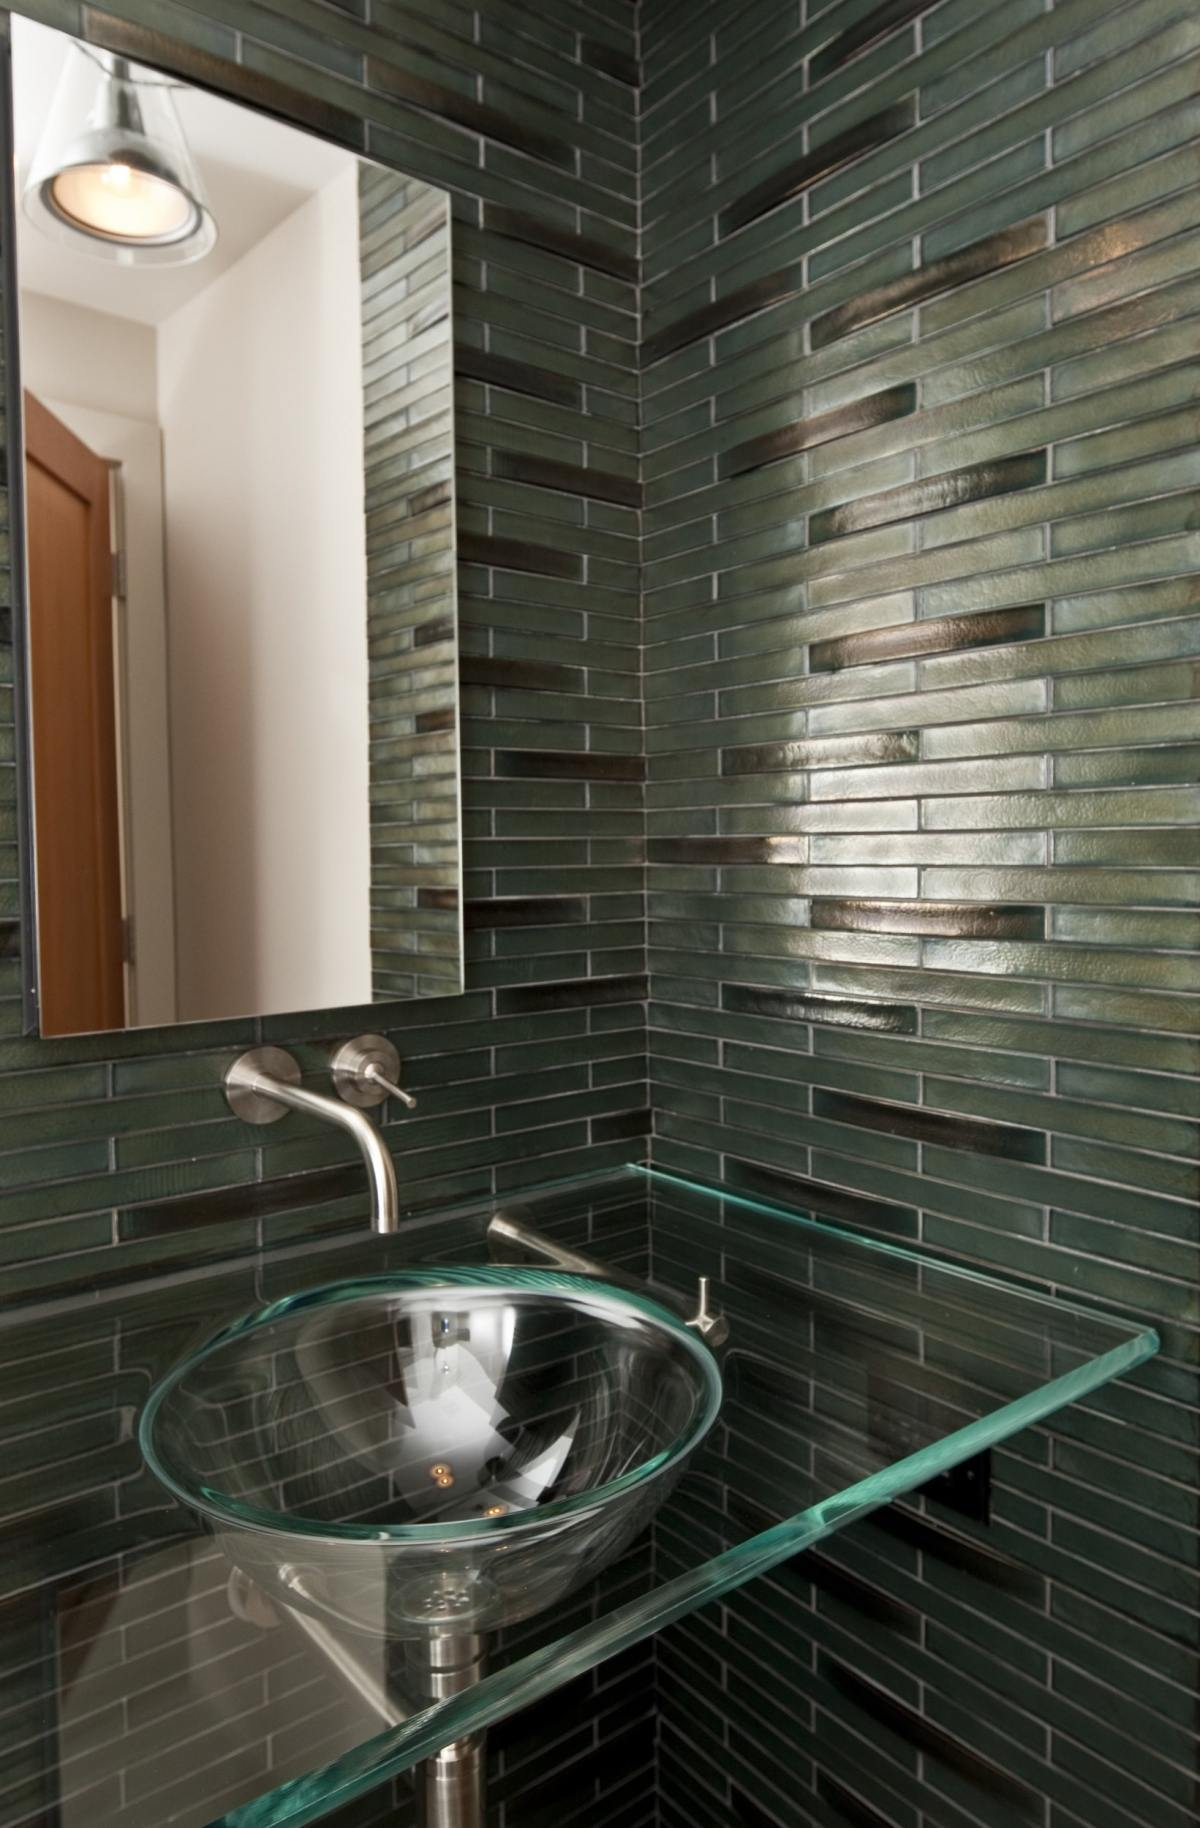 Clear glass above sink on clear glass counter top with dark green tile backsplash